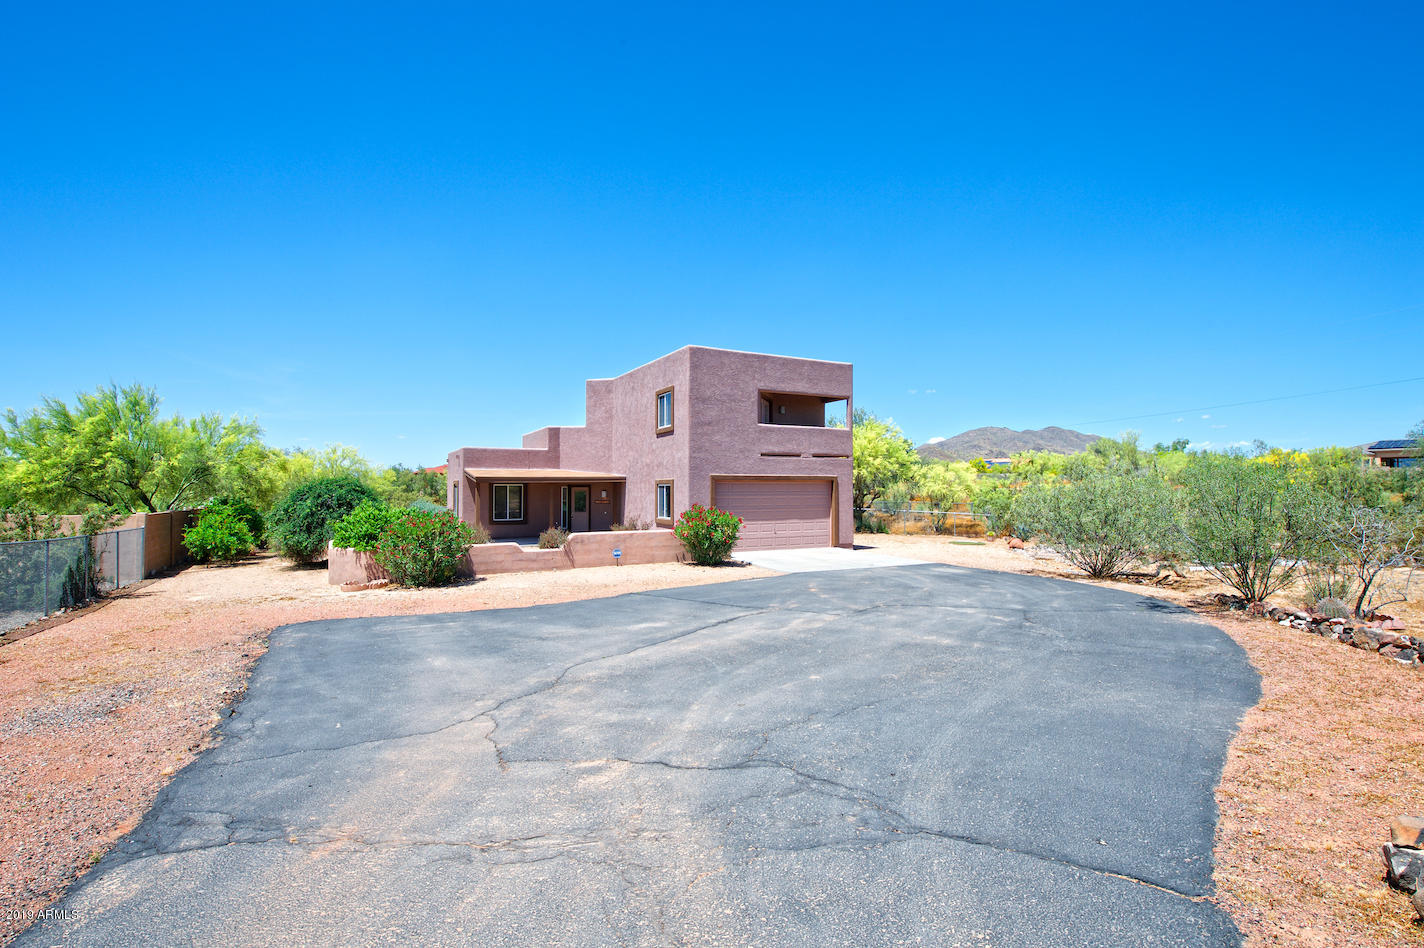 40418 N CENTRAL Avenue, Anthem in Maricopa County, AZ 85086 Home for Sale